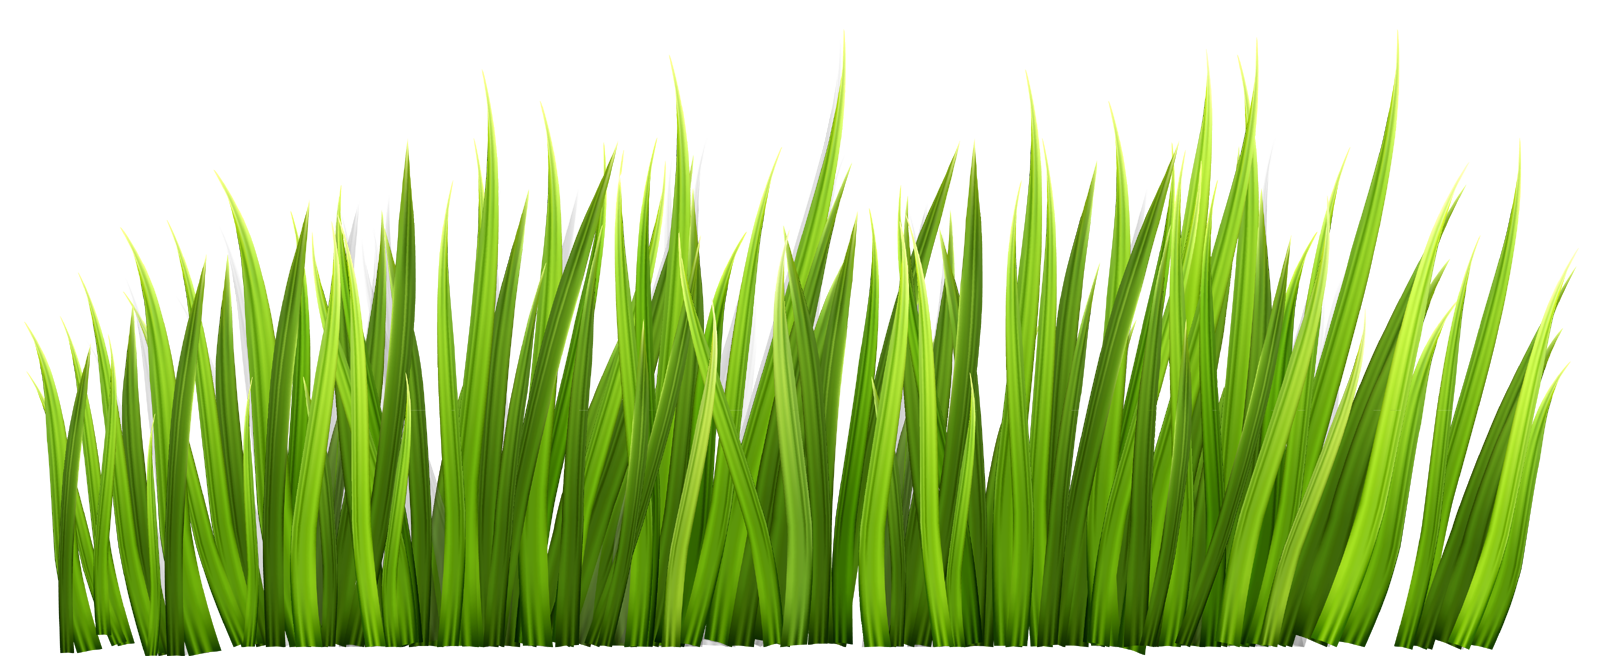 Images free download transparent. Grass clipart png format free download